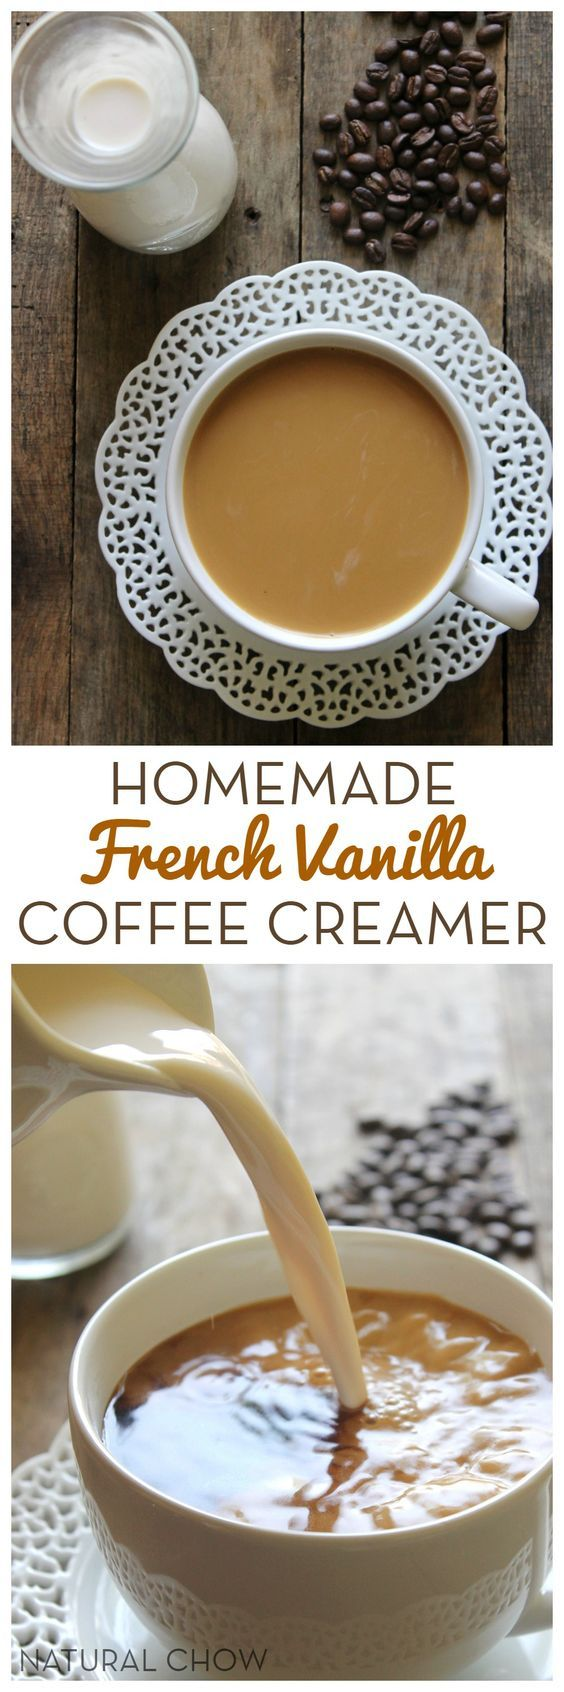 Homemade French Vanilla Coffee Creamer // This homemade french vanilla coffee creamer only takes 5 minutes to make and is such a kitchen staple! Made with 3 simple ingredients, it's so much healthier than storebought creamer.